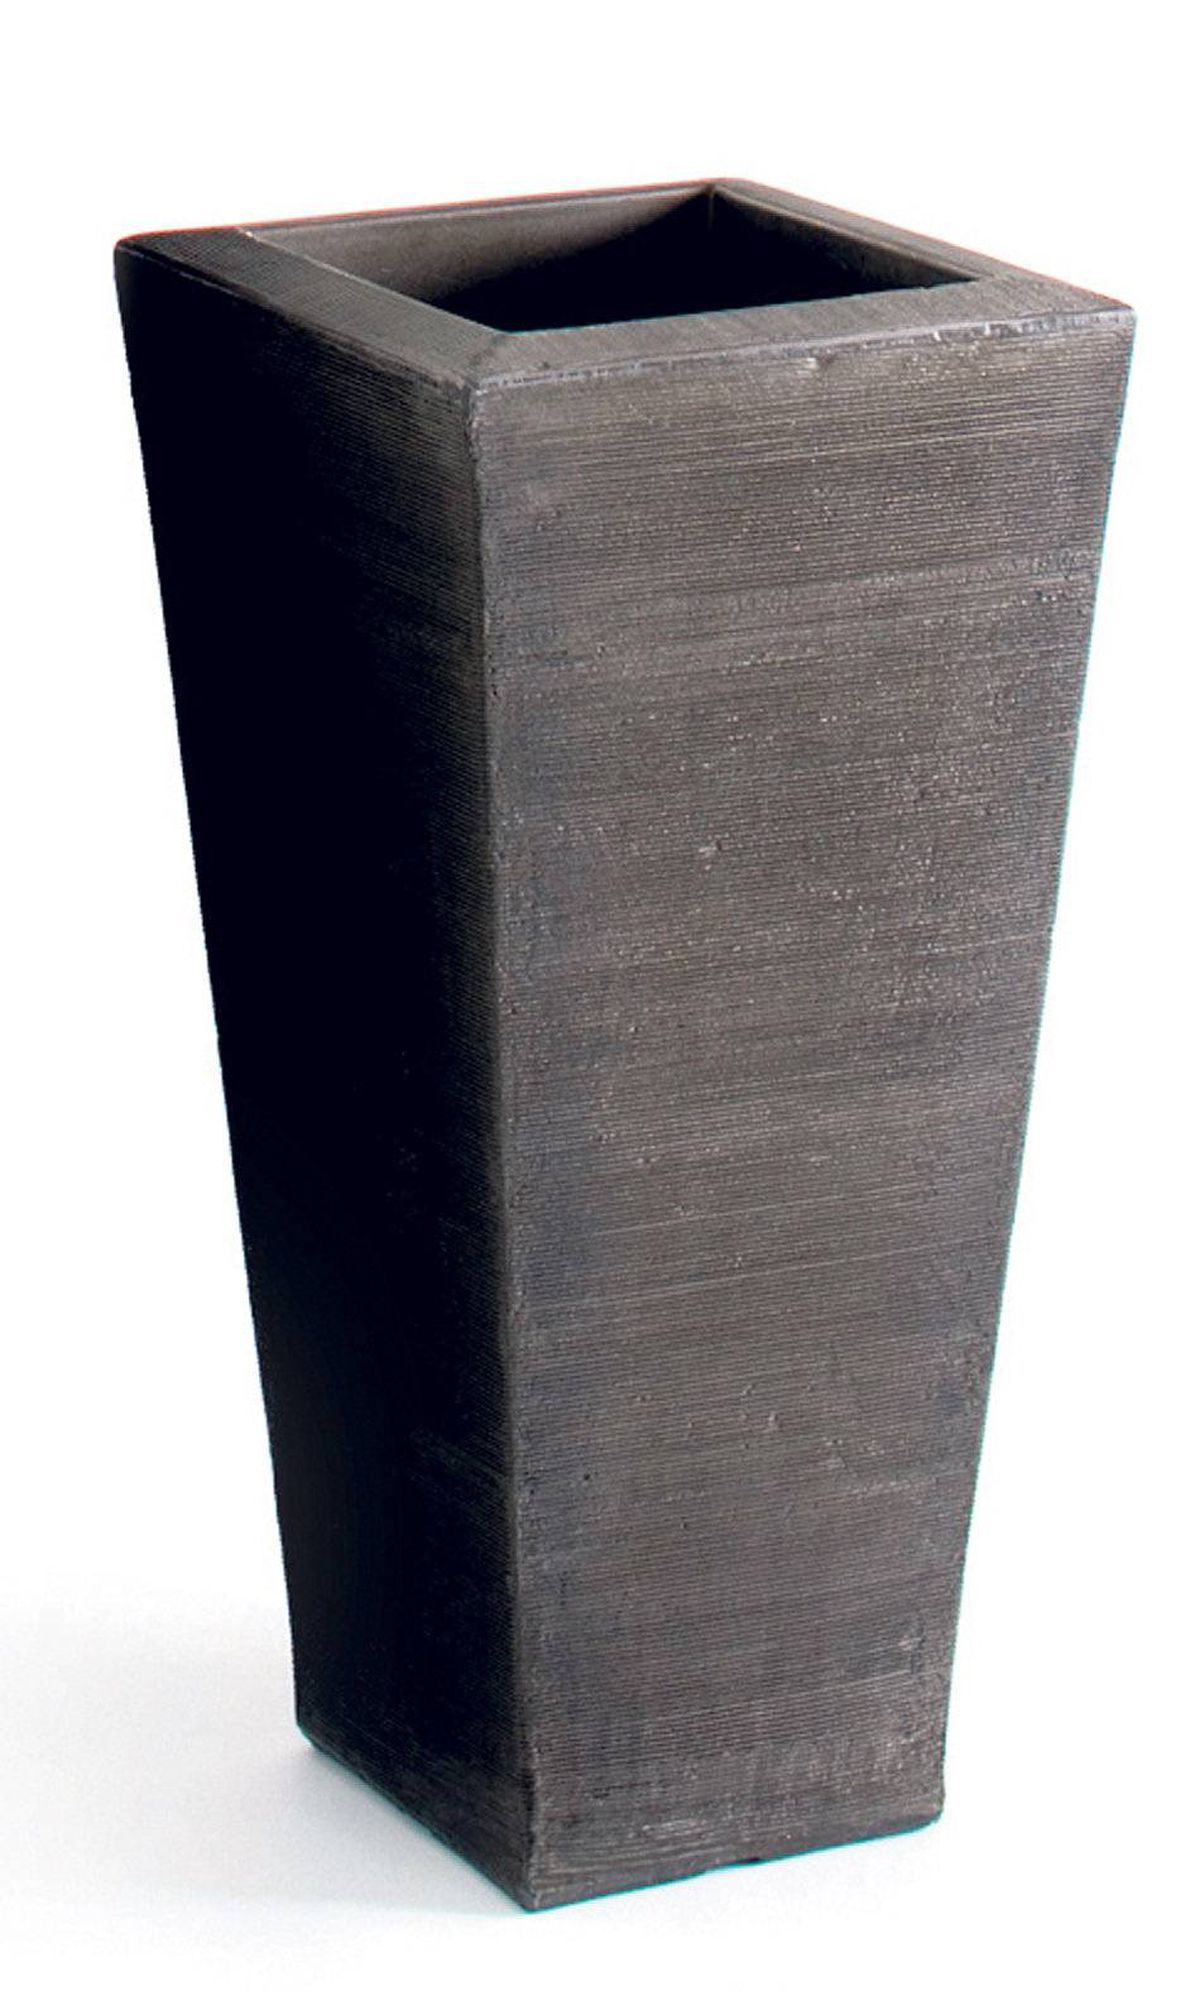 Crescent's Chelsea Planter is made of lightweight resin and comes in 18 colours, from classic black and pewter to dramatic red and marble. 15-inch planter, $185 through www.andrewricharddesigns.com.